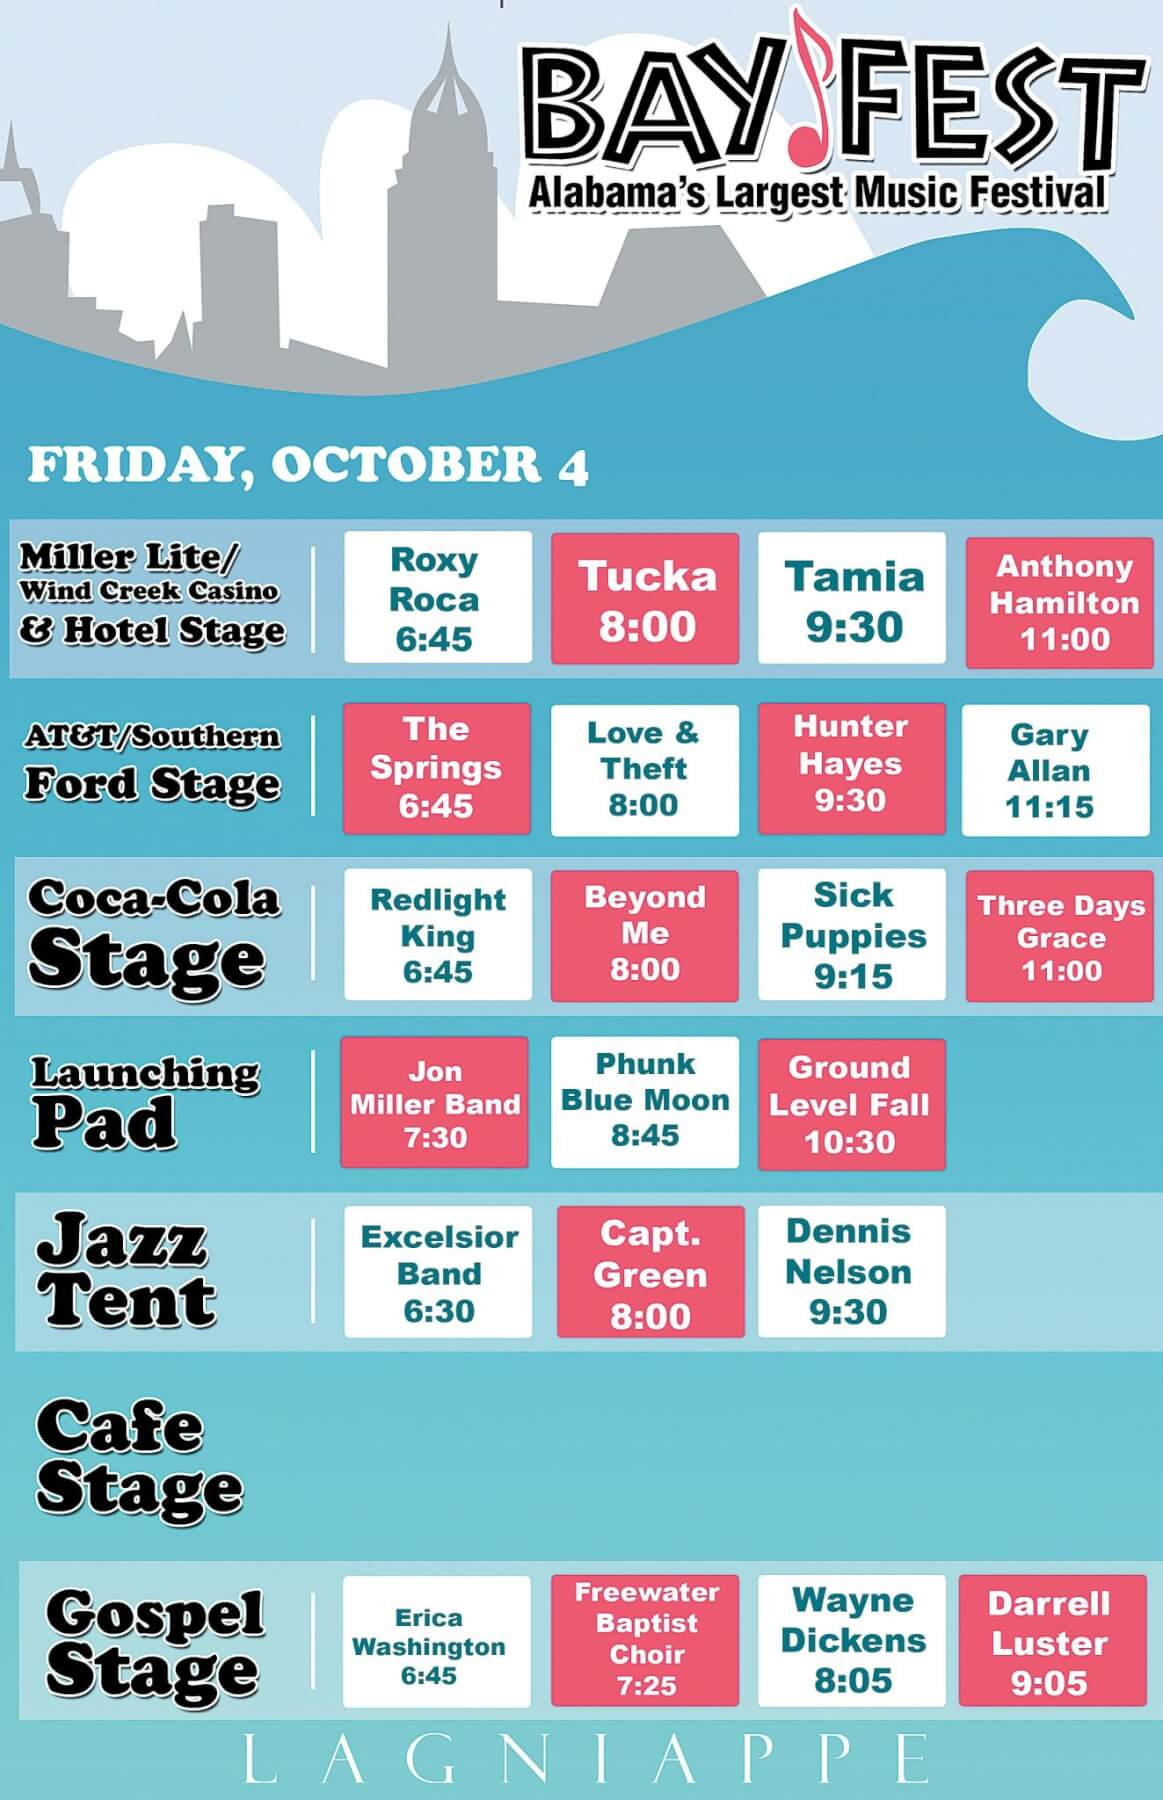 Bayfest band bios and schedule, Friday, Oct. 4 (UPDATED)